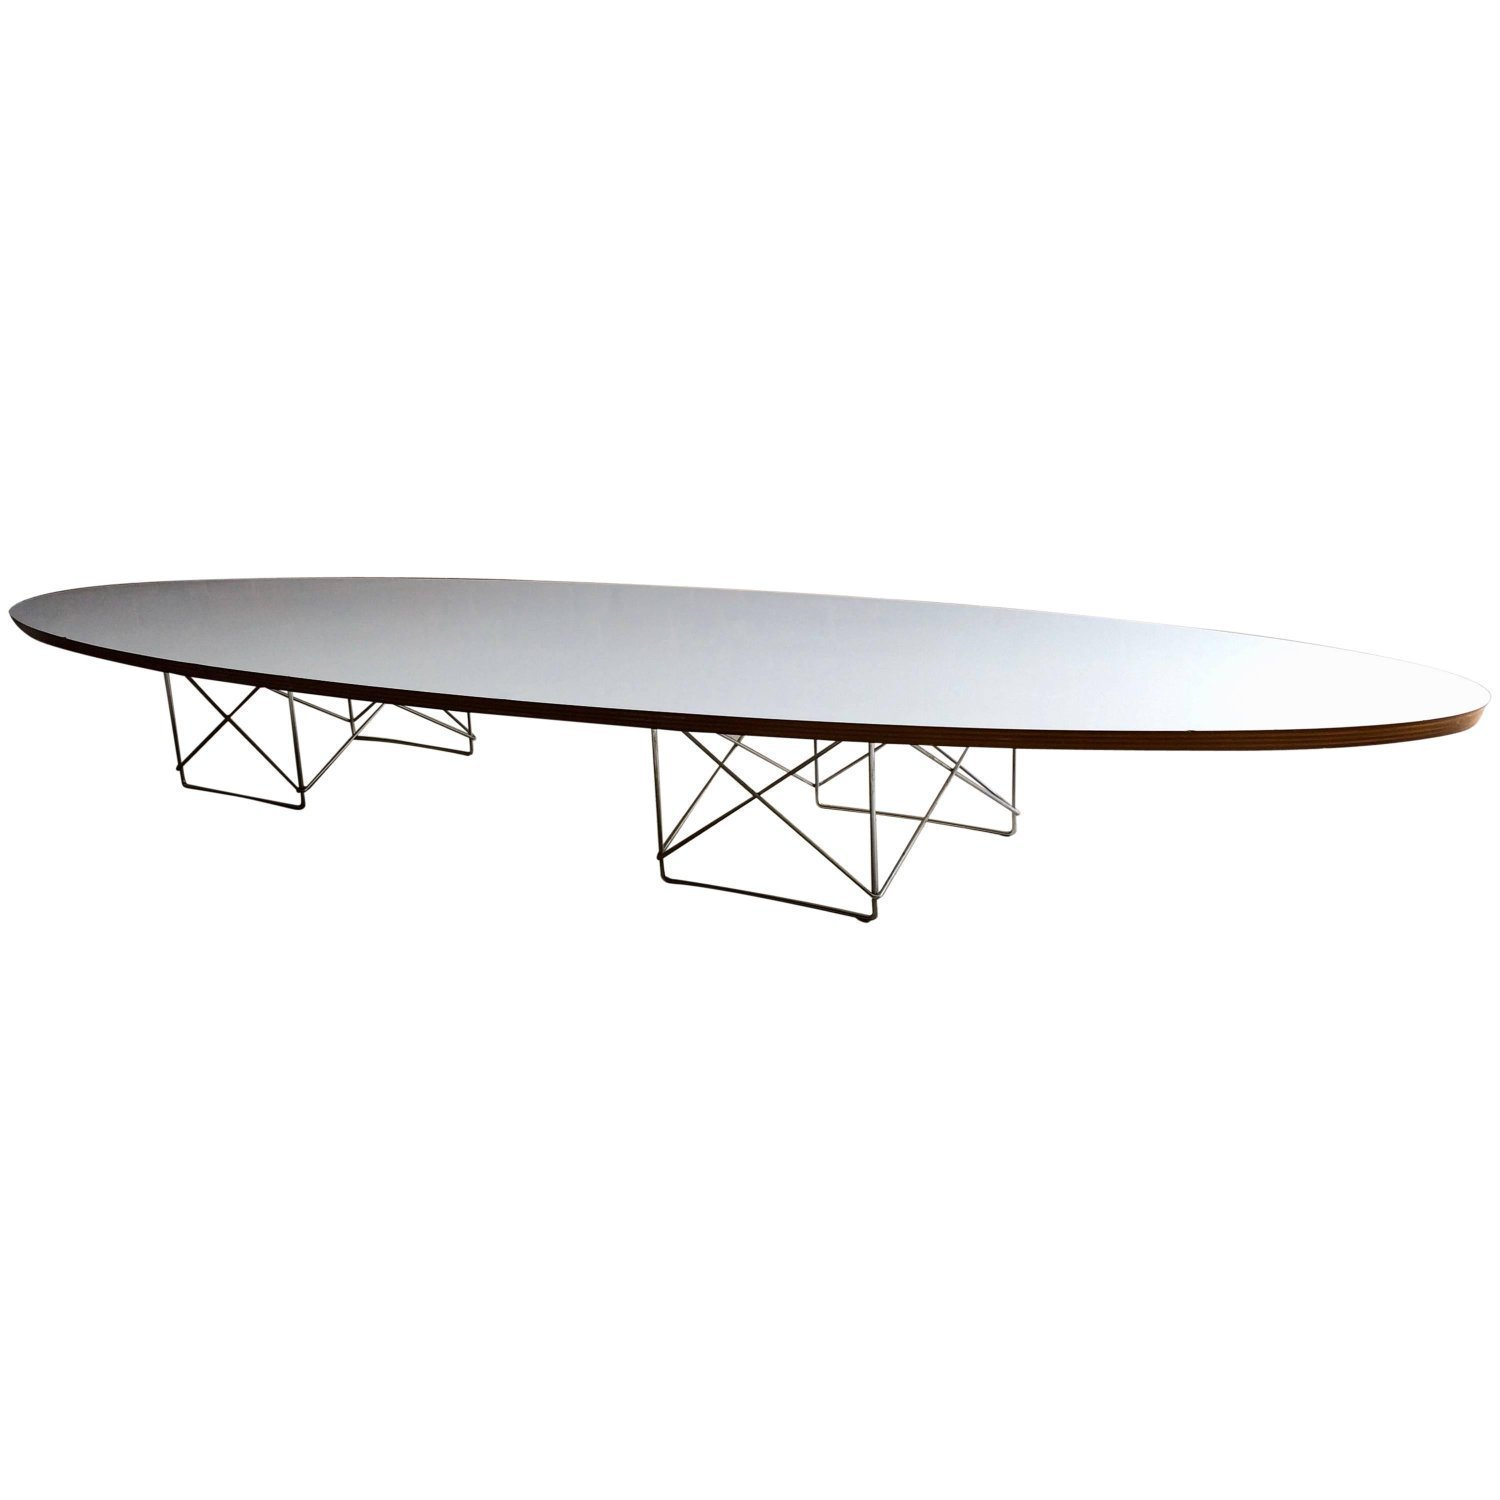 Eames Surfboard Coffee Table.Eames Elliptical Coffee Table For Herman Miller Surfboard Mid Century